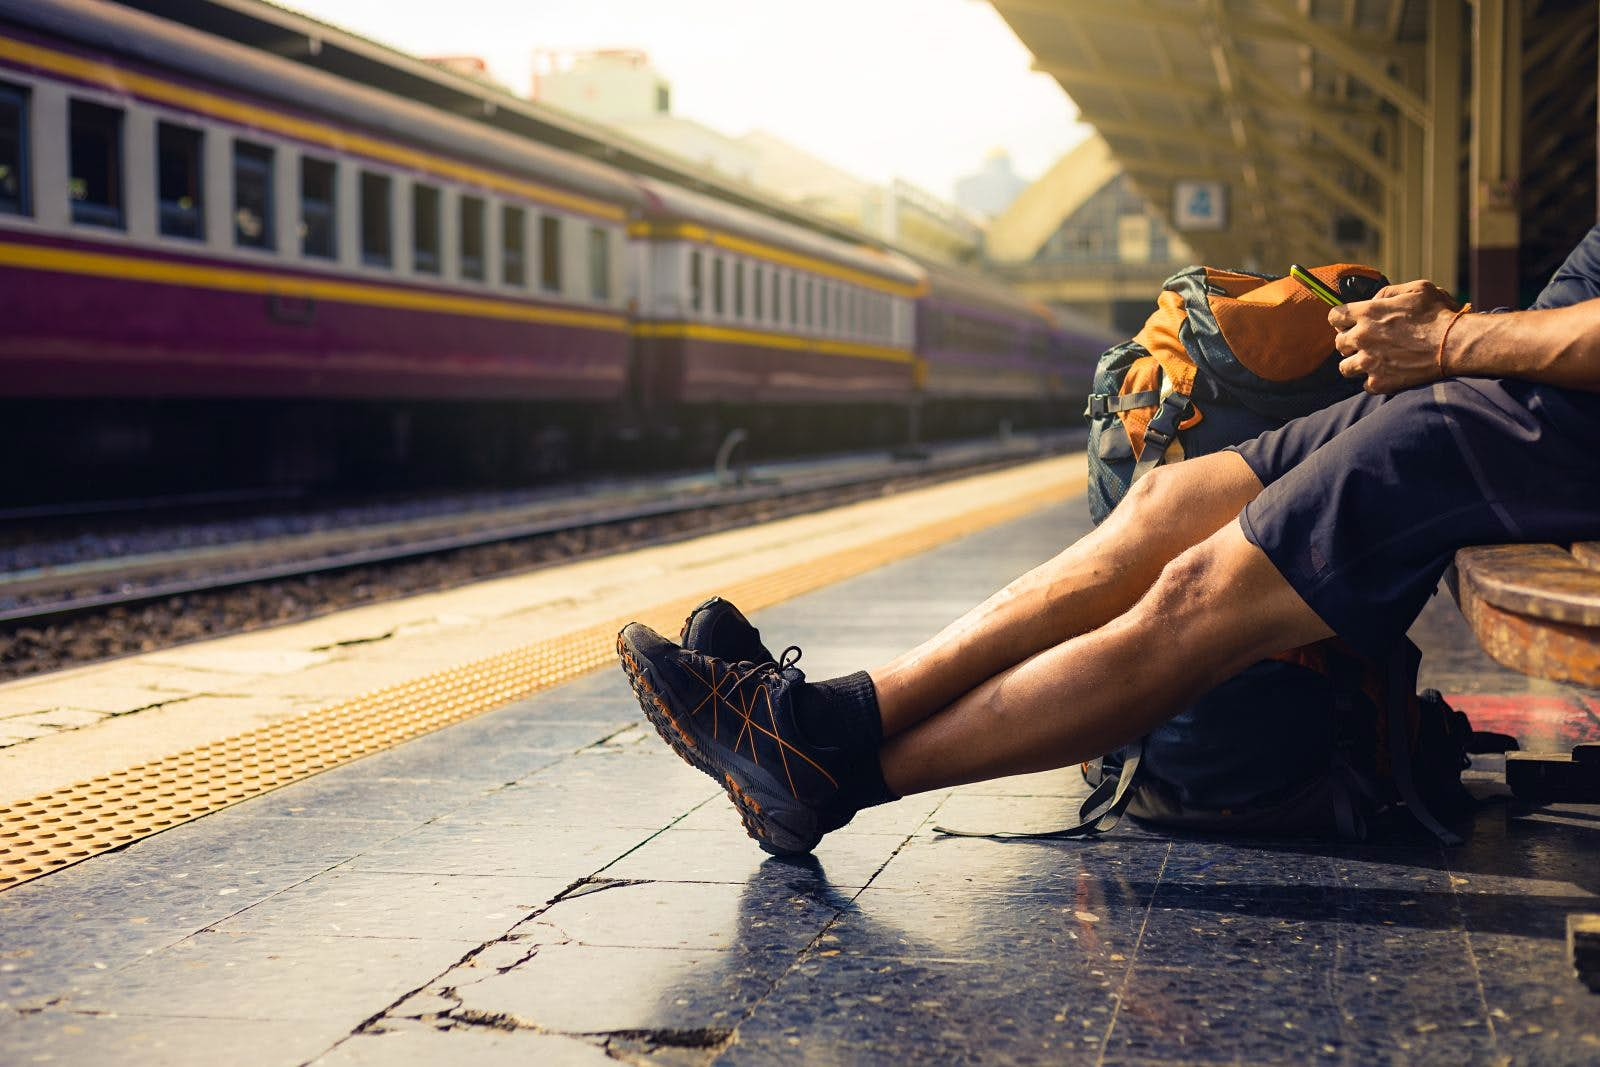 A male traveller plays on his phone while sitting on a bench in a train station